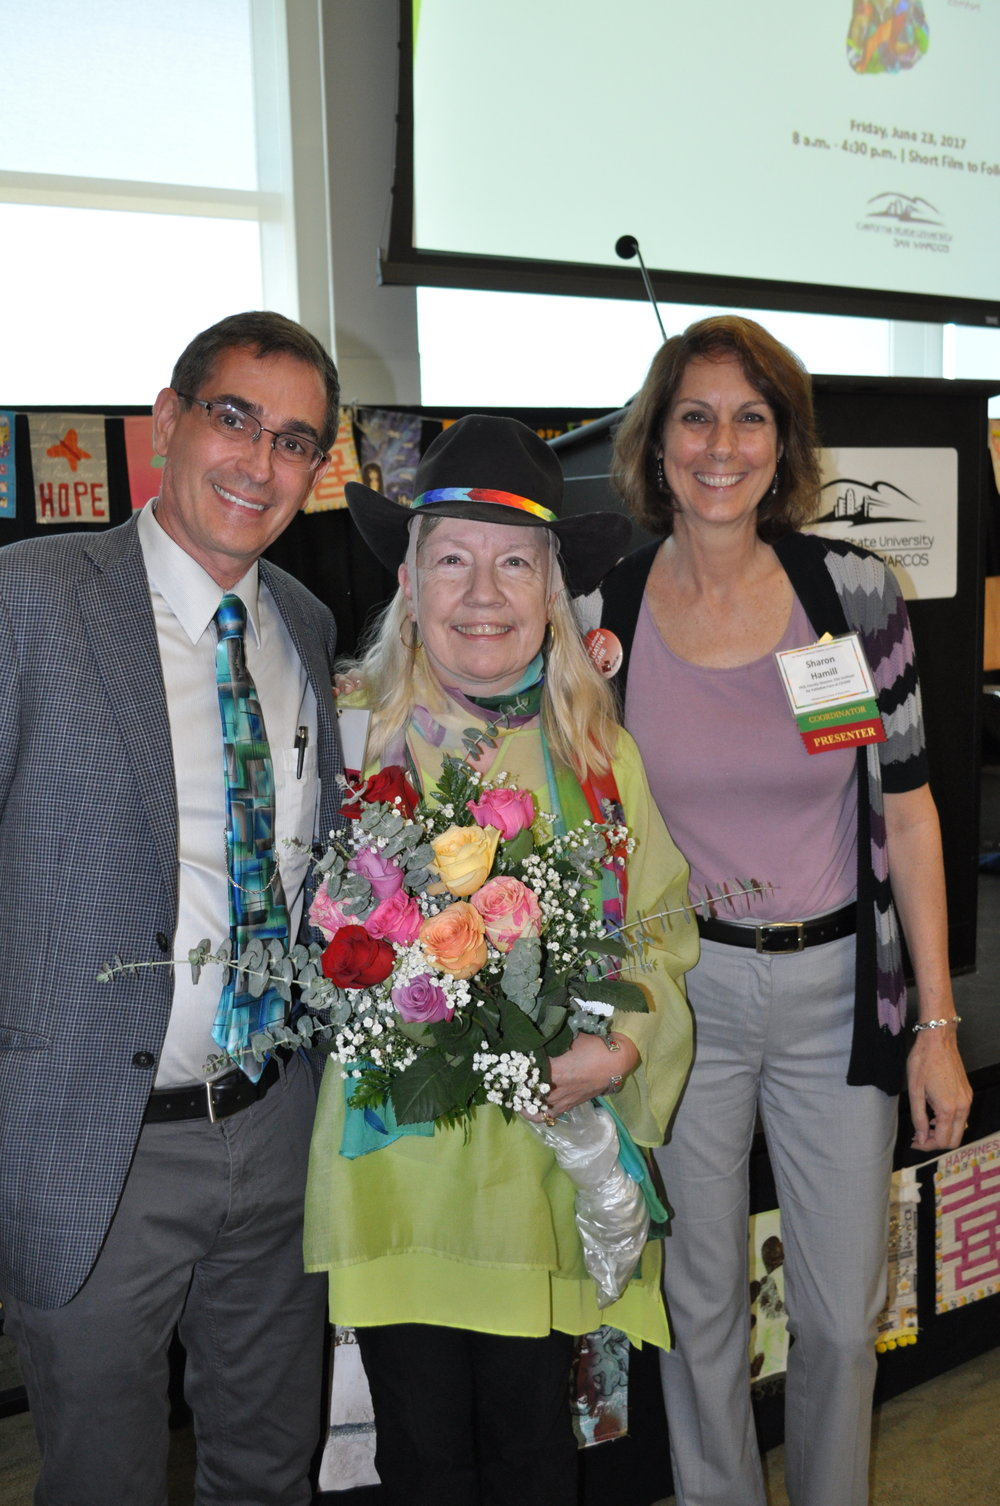 Karl Steinberg, MD (left) with first Executive Director of CSUSM Institute of Palliative Care (Helen McNeal - center) and Sharon Hamill, PHD Faculty Director of Institute of Palliative Care at CSUSM (right).